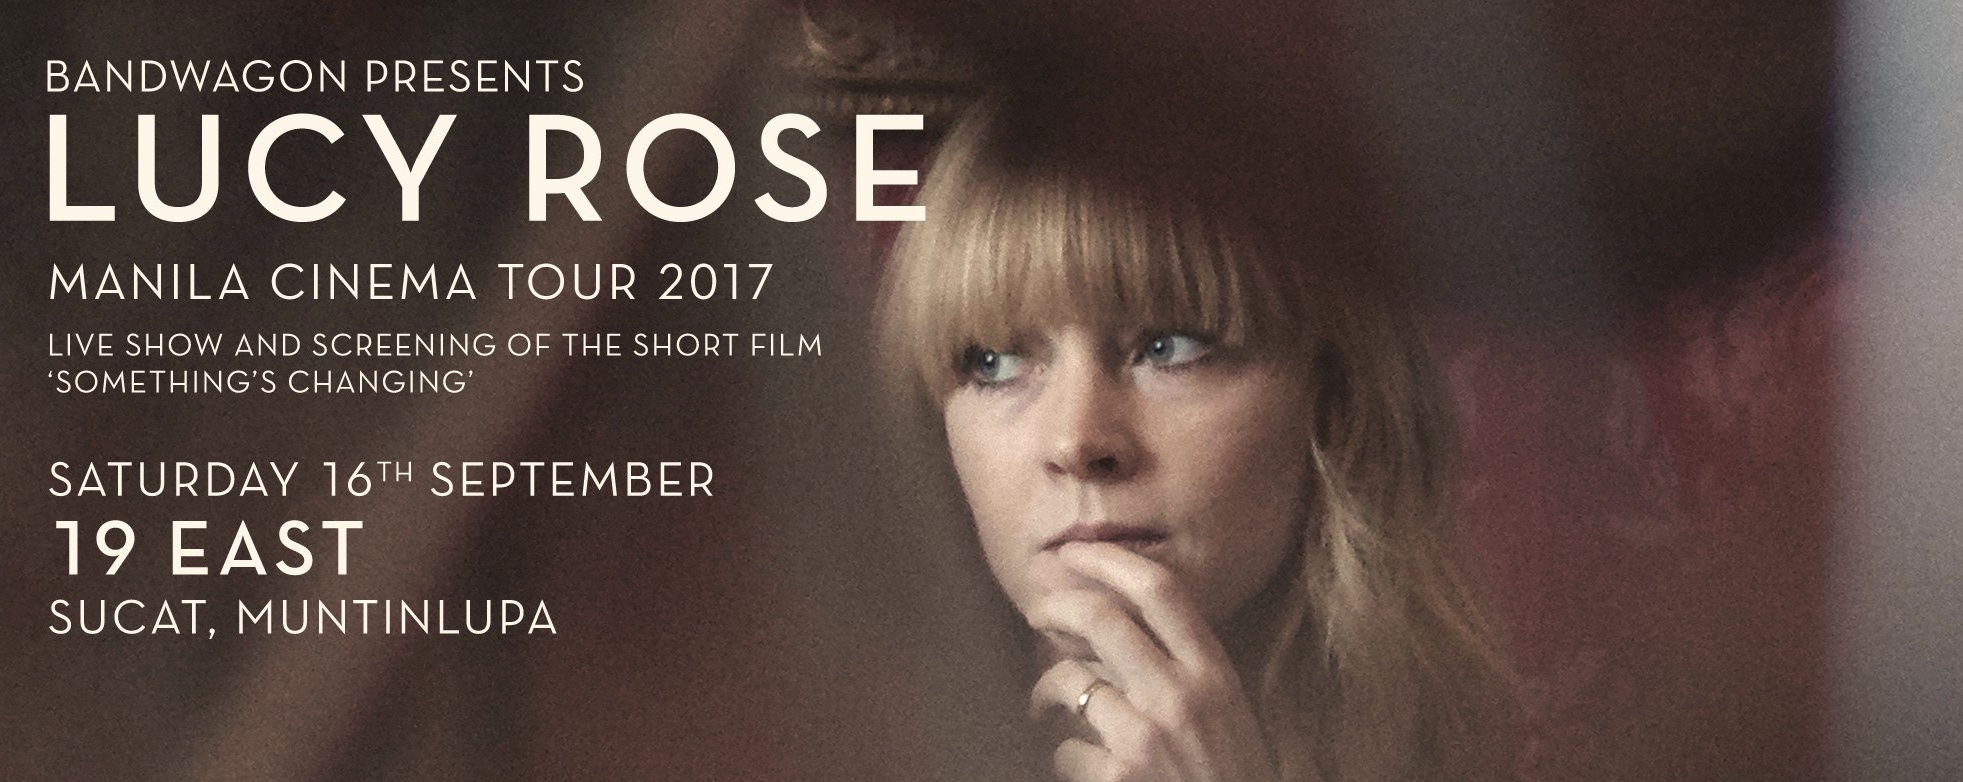 Bandwagon Live: Lucy Rose Manila Cinema Tour 2017